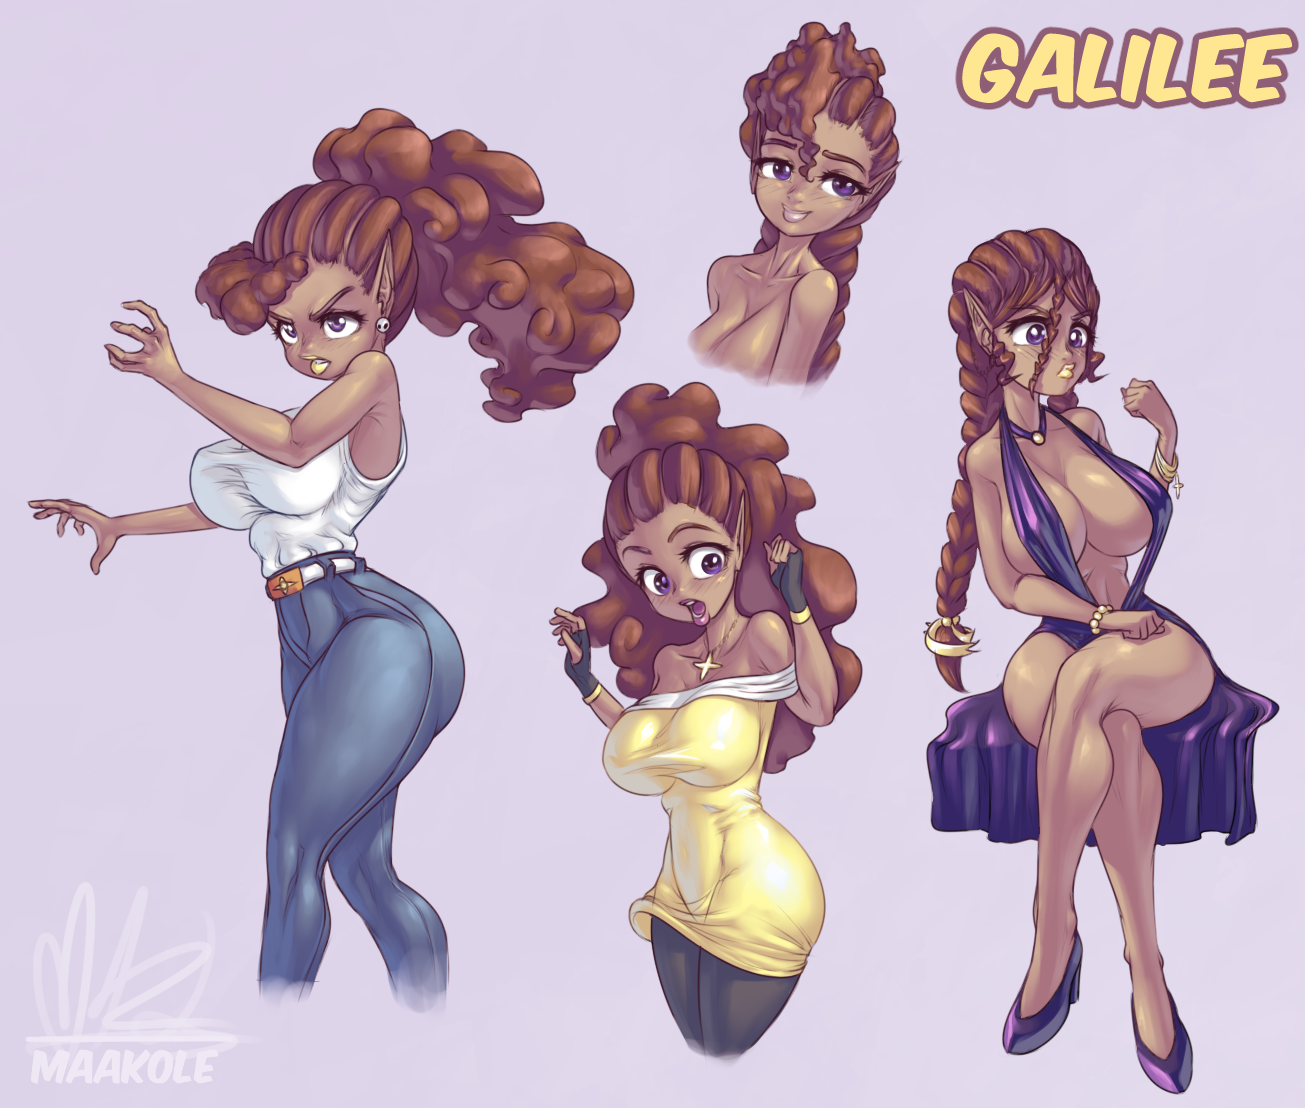 Galilee Expressions